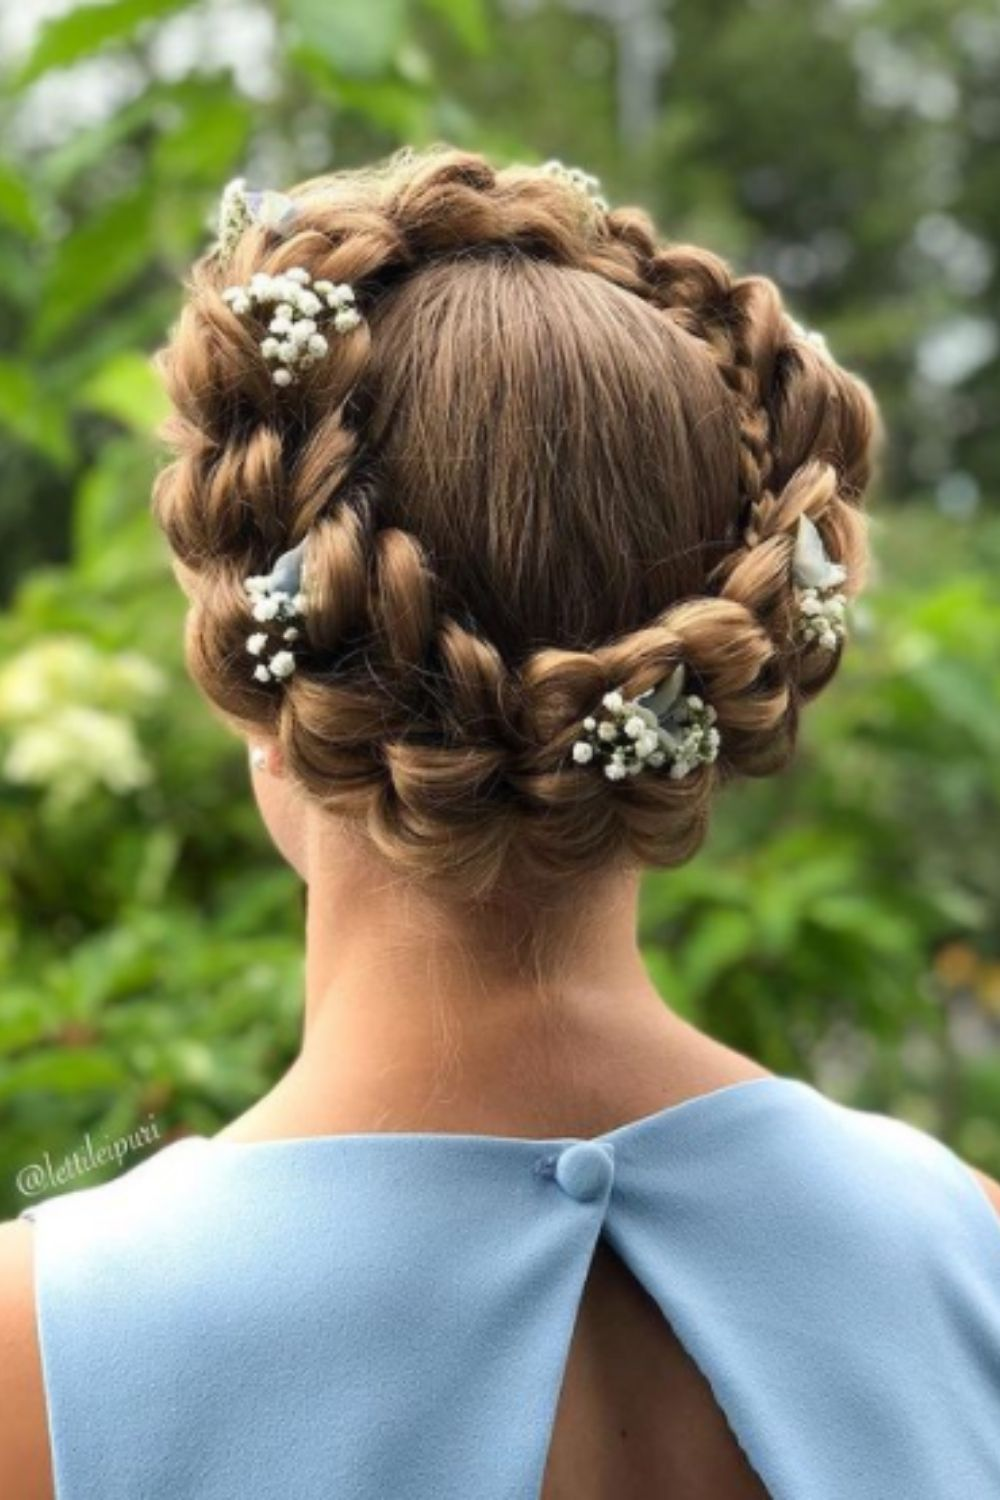 How long does it take to get homecoming hairstyles updo with braids